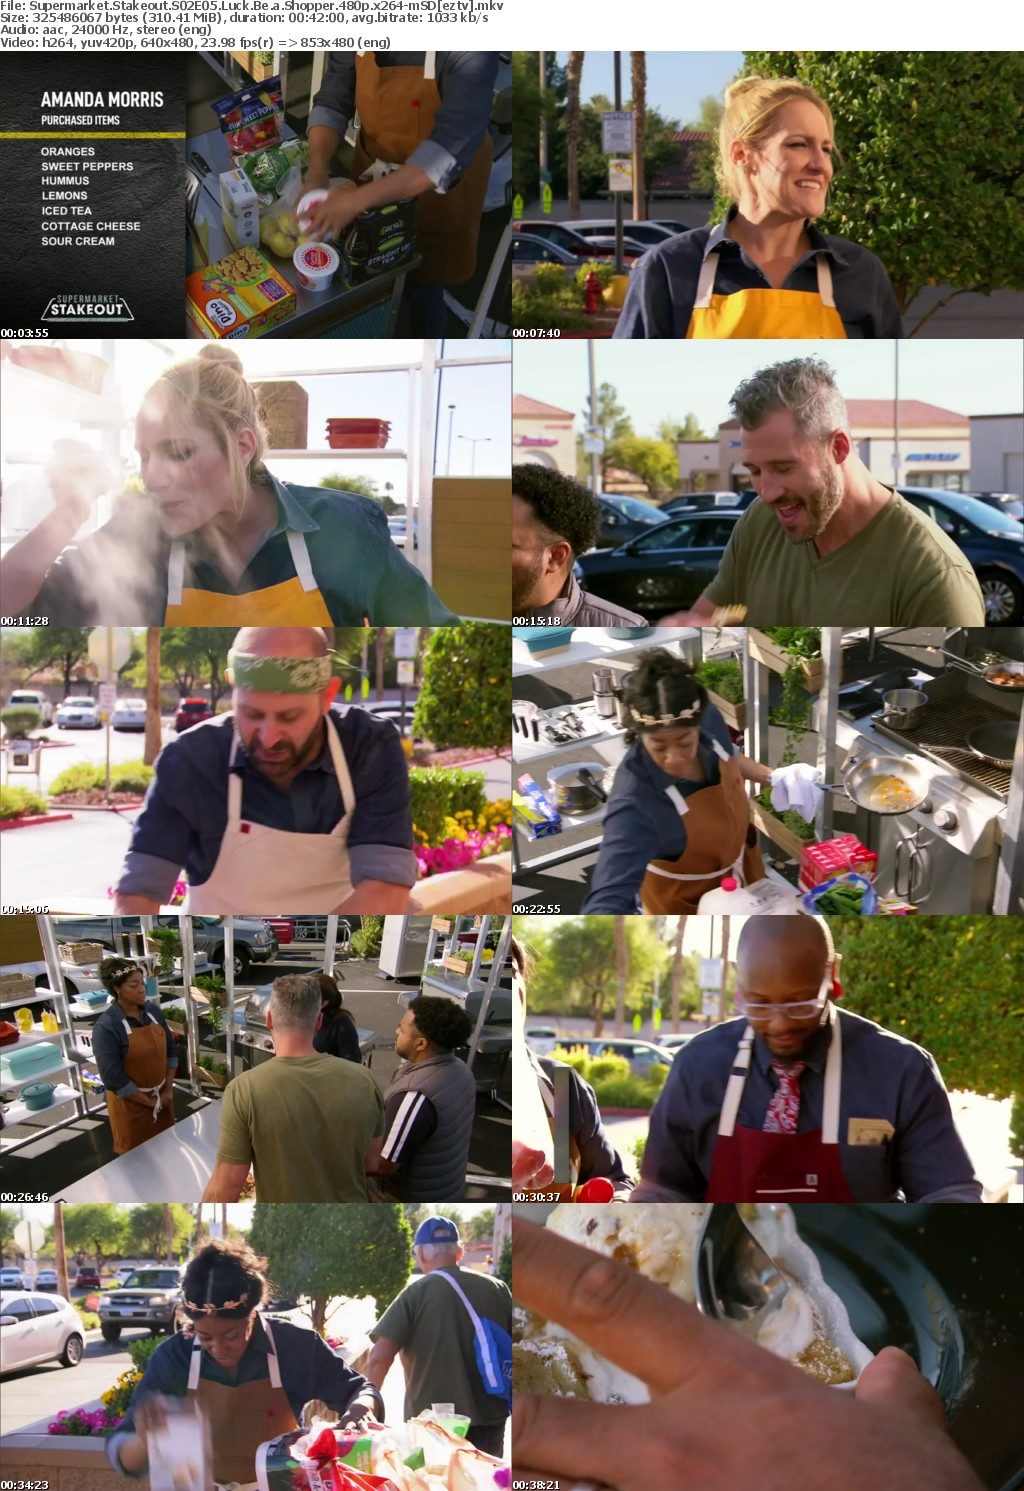 Supermarket Stakeout S02E05 Luck Be a Shopper 480p x264-mSD